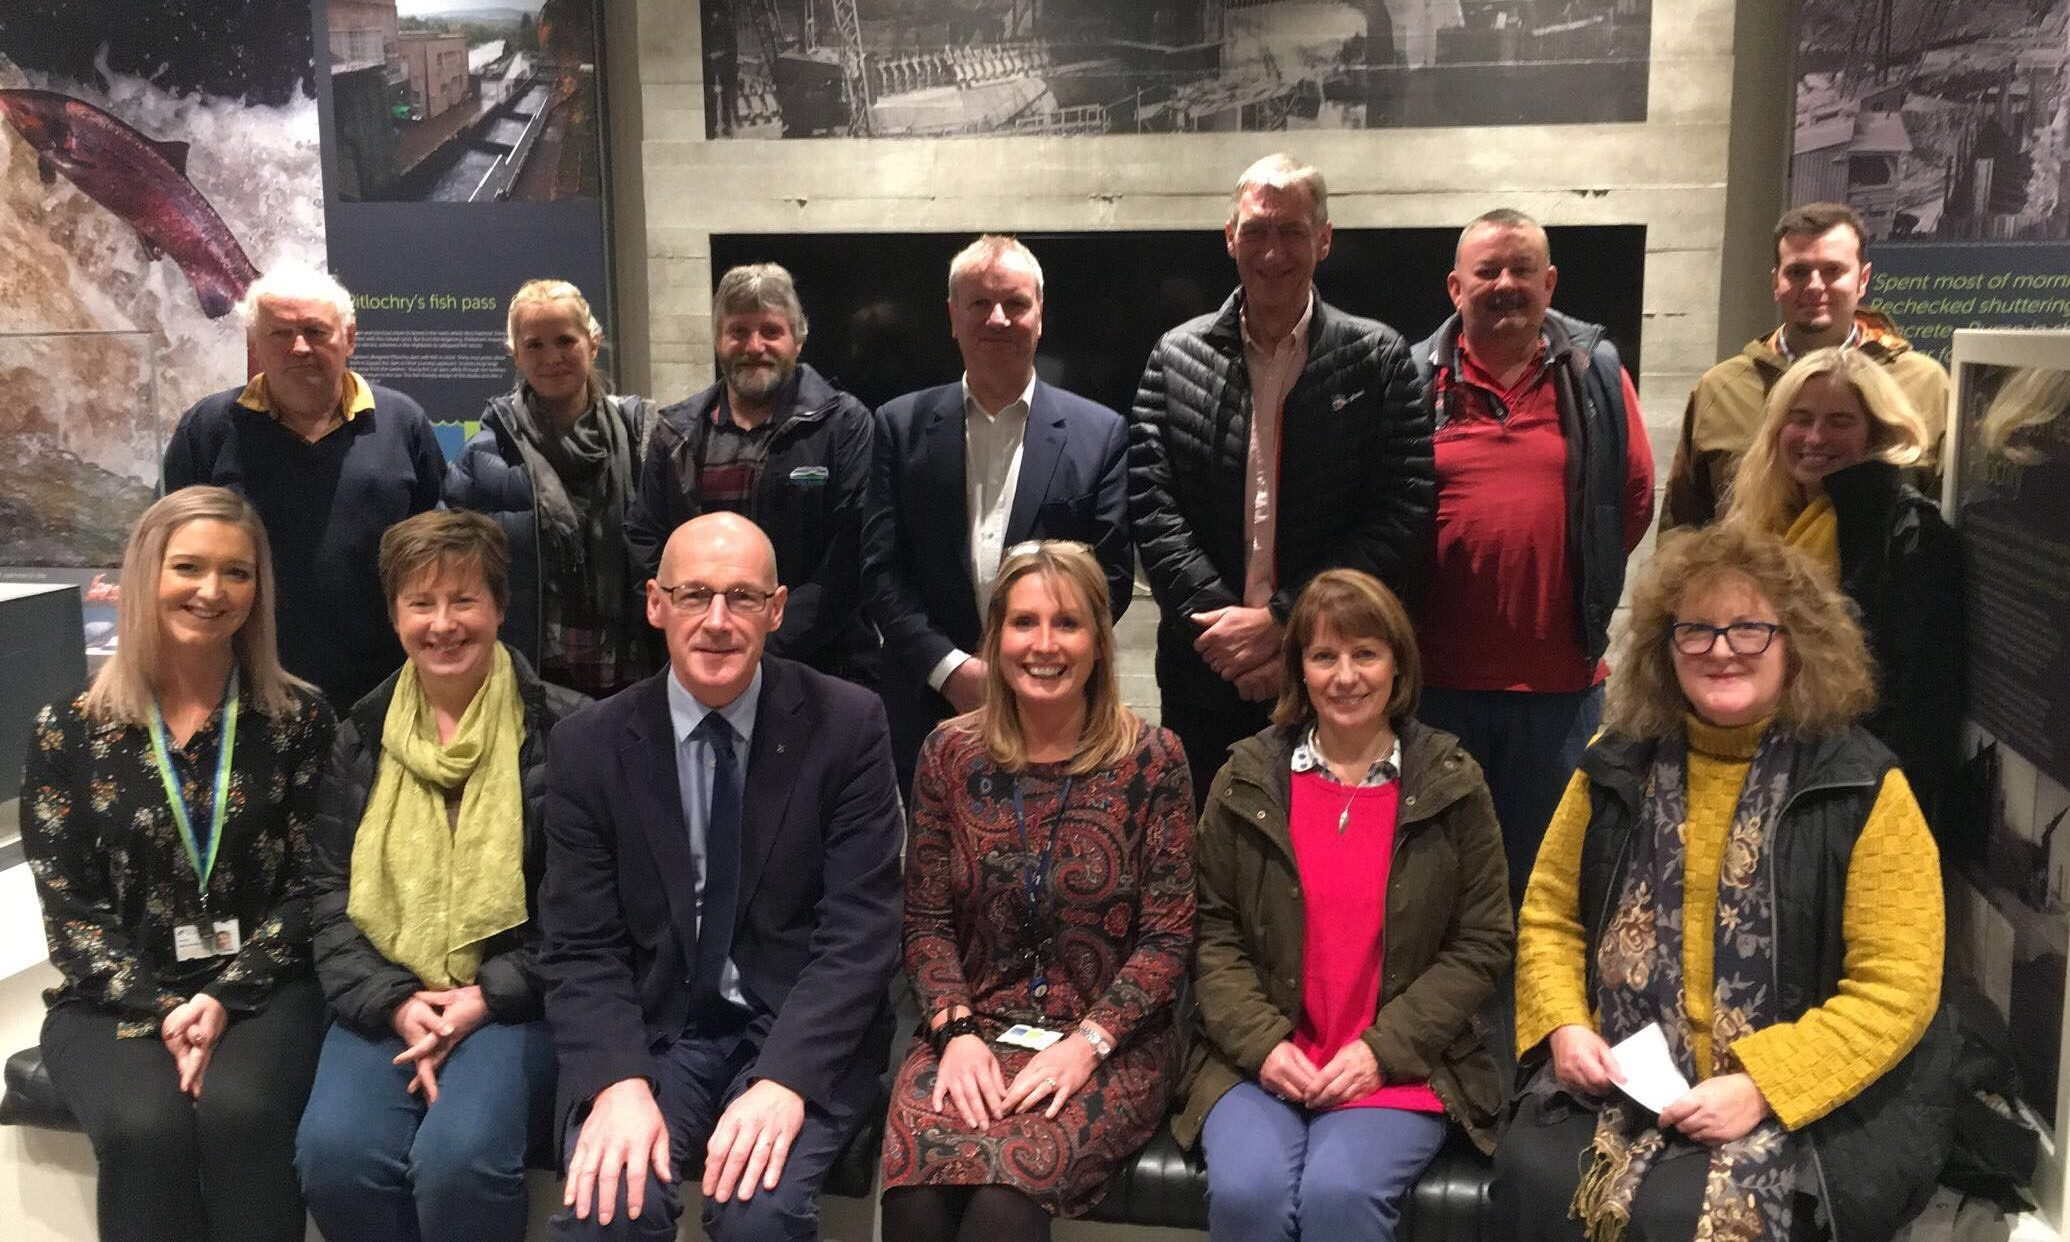 SNP leaders including Perthshire North MSP and Deputy First Minister John Swinney and MP Pete Wishart invited leading employers and local businesses to a summit in Pitlochry Dam on Friday night to discuss the effect of staff shortages on the local economy.